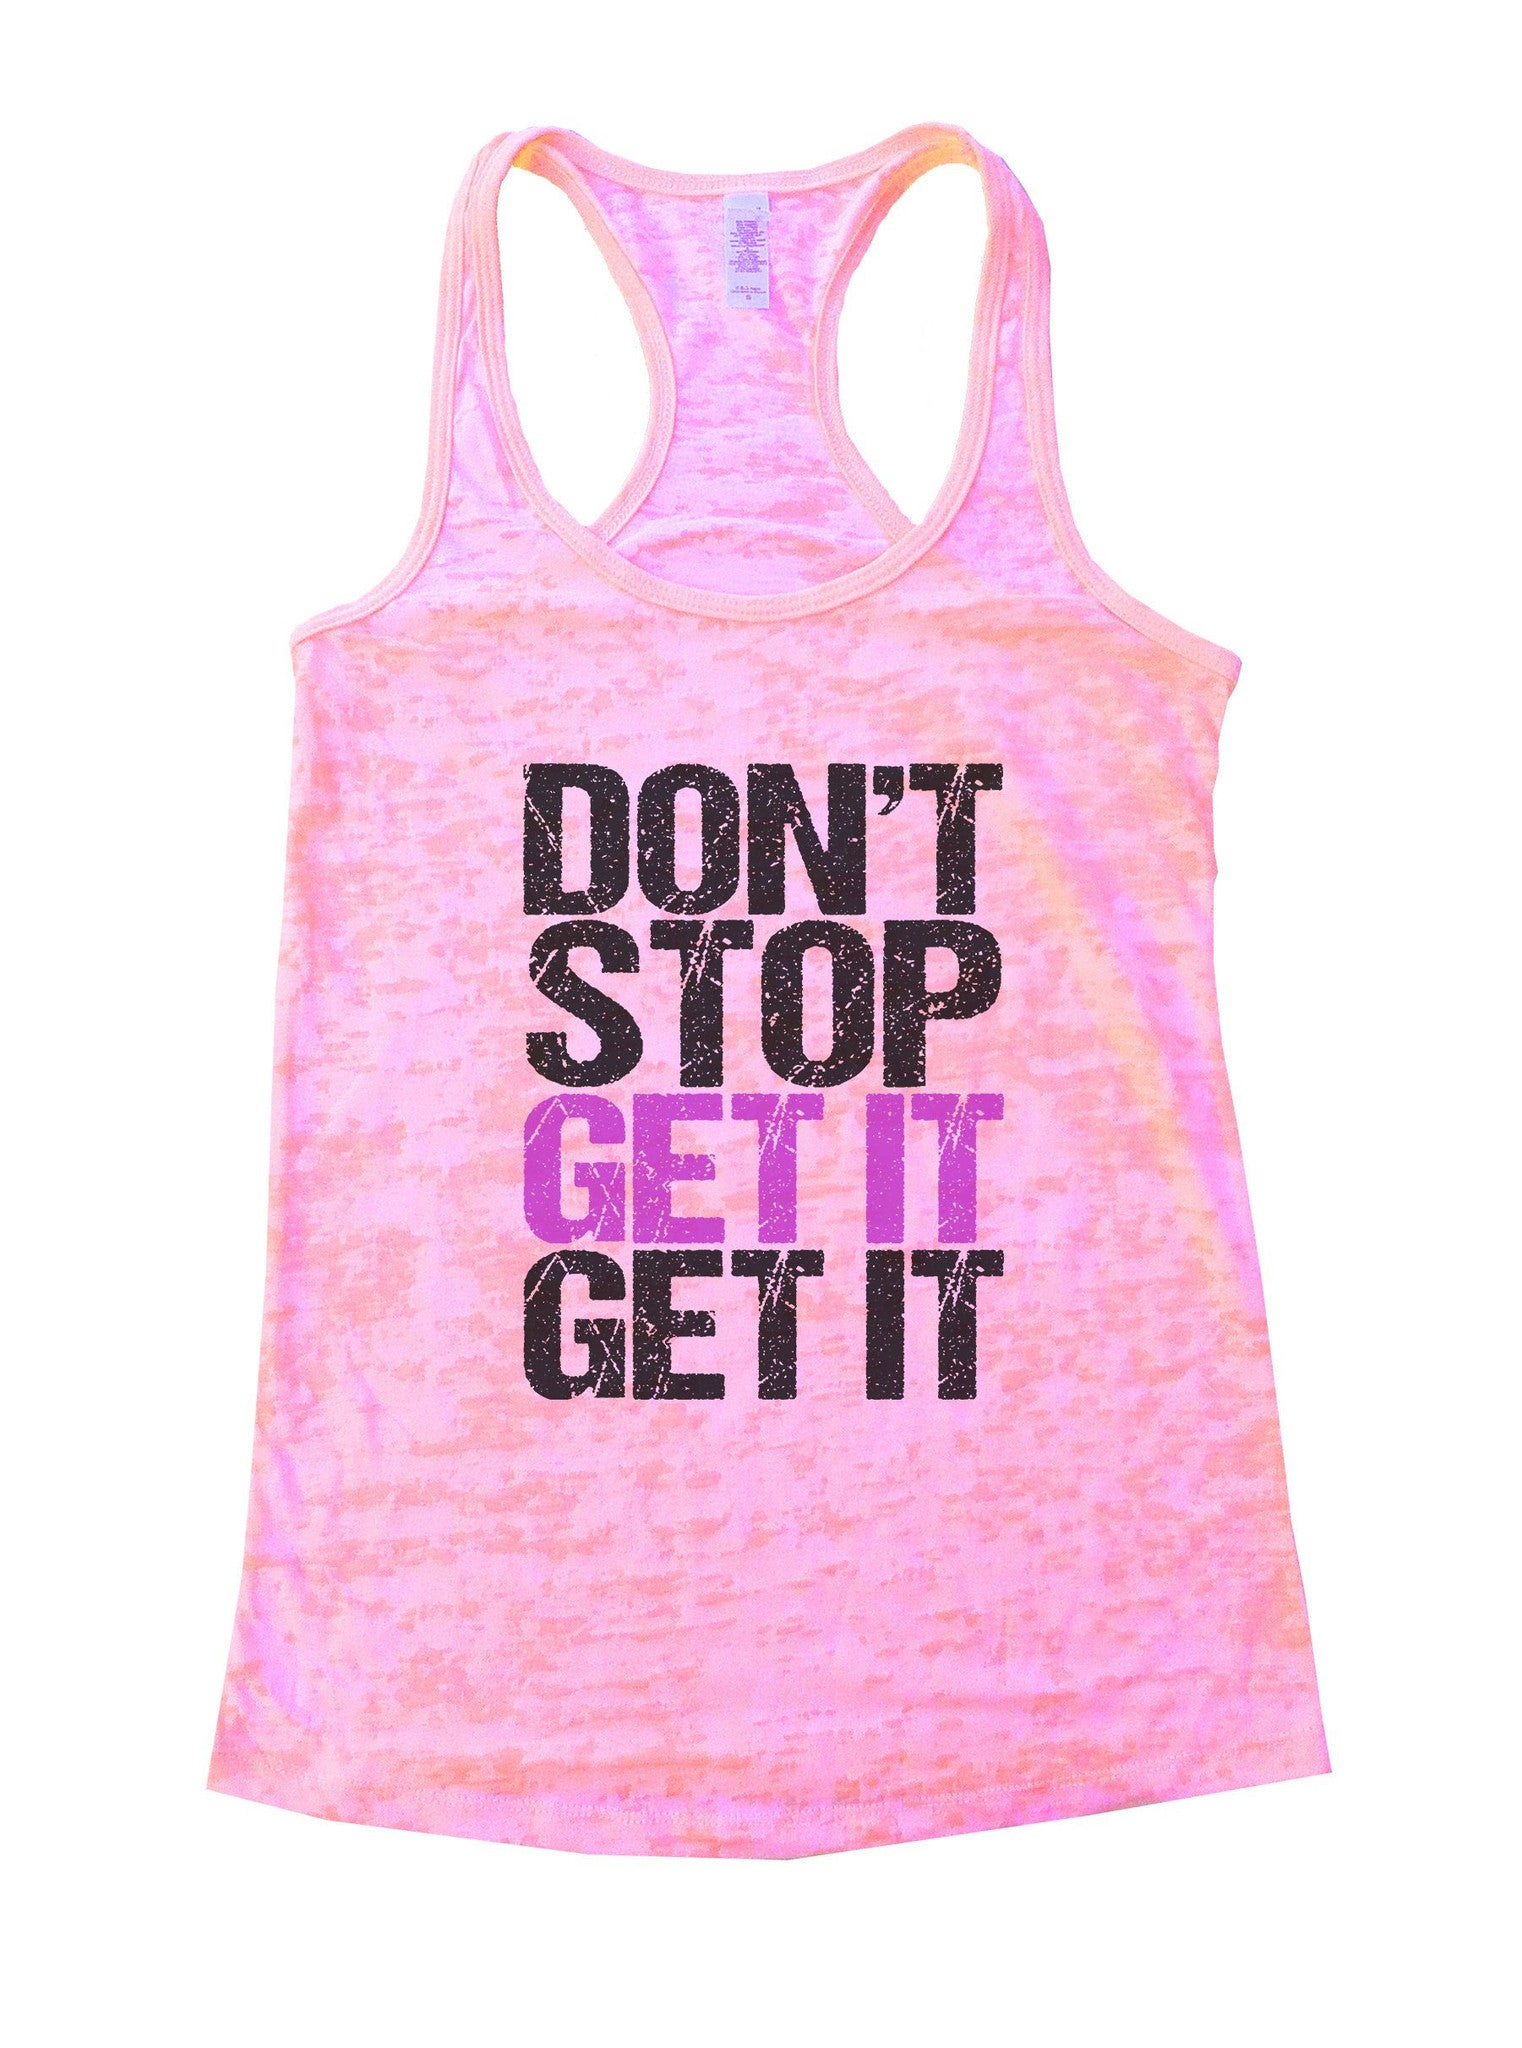 Don't Stop Get It Get It Burnout Tank Top By BurnoutTankTops.com - 1105 - Funny Shirts Tank Tops Burnouts and Triblends  - 3